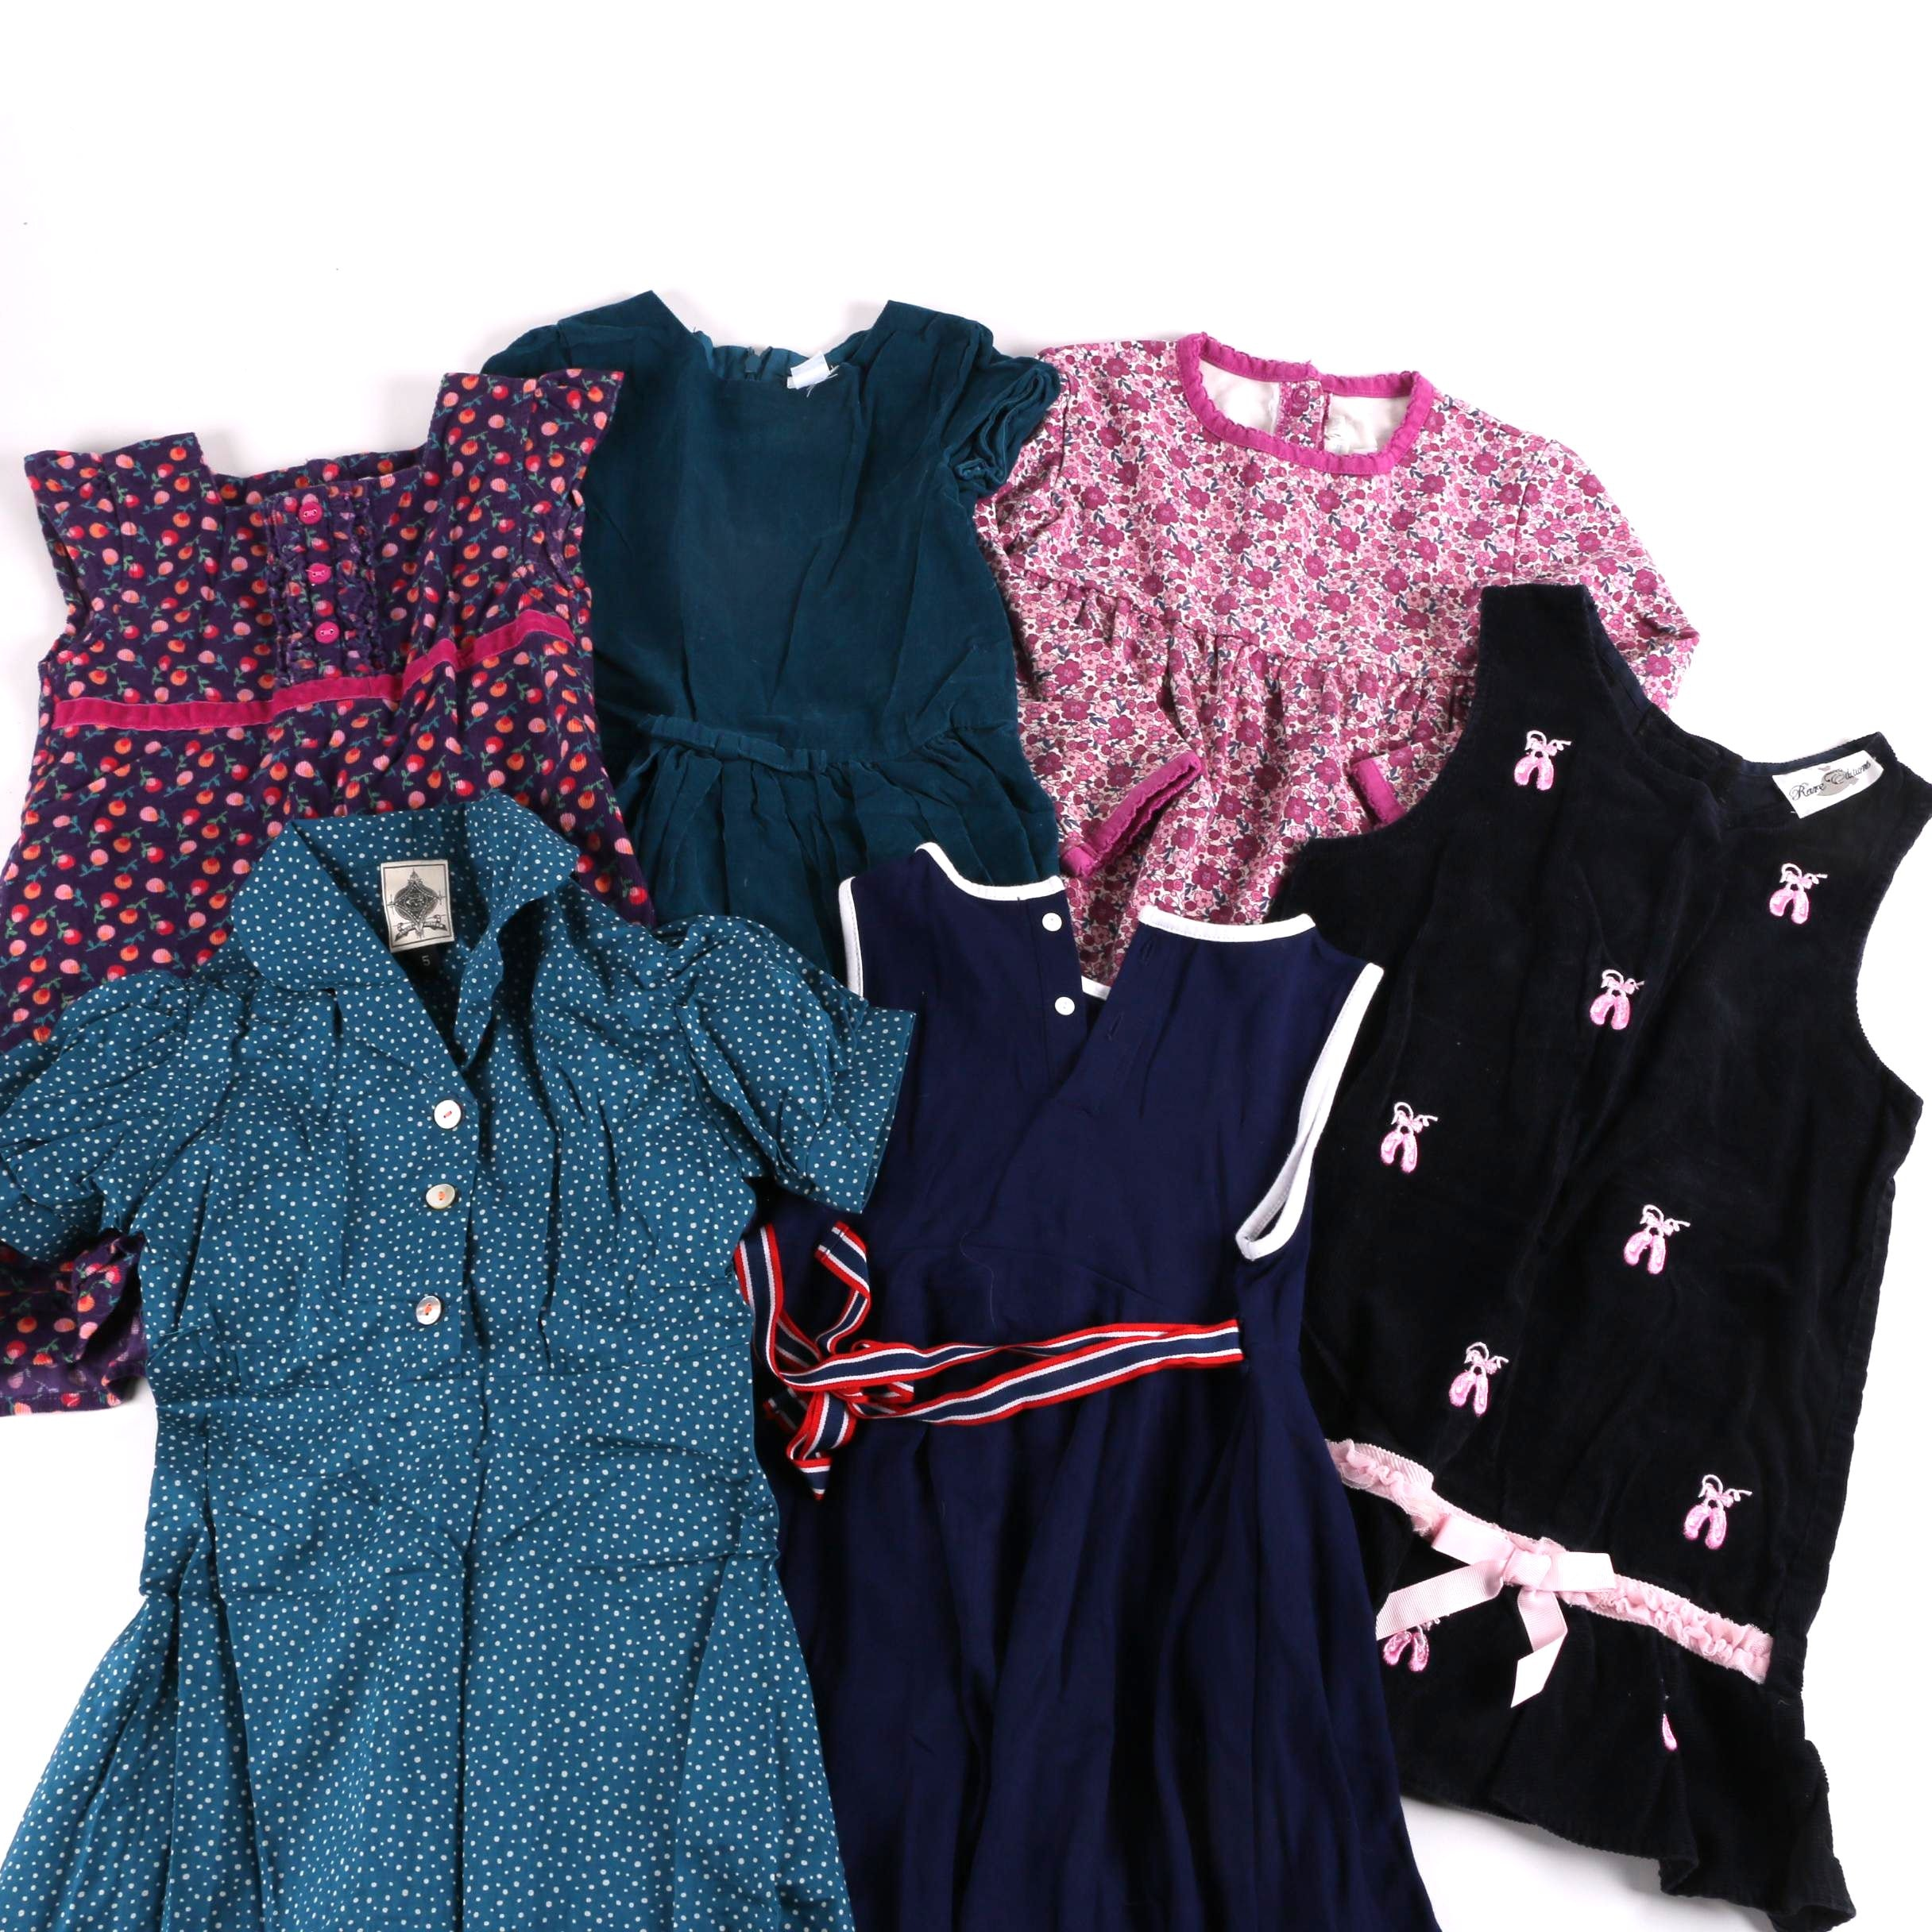 Girls' Dresses Including Rare Editions and Darcy Brown